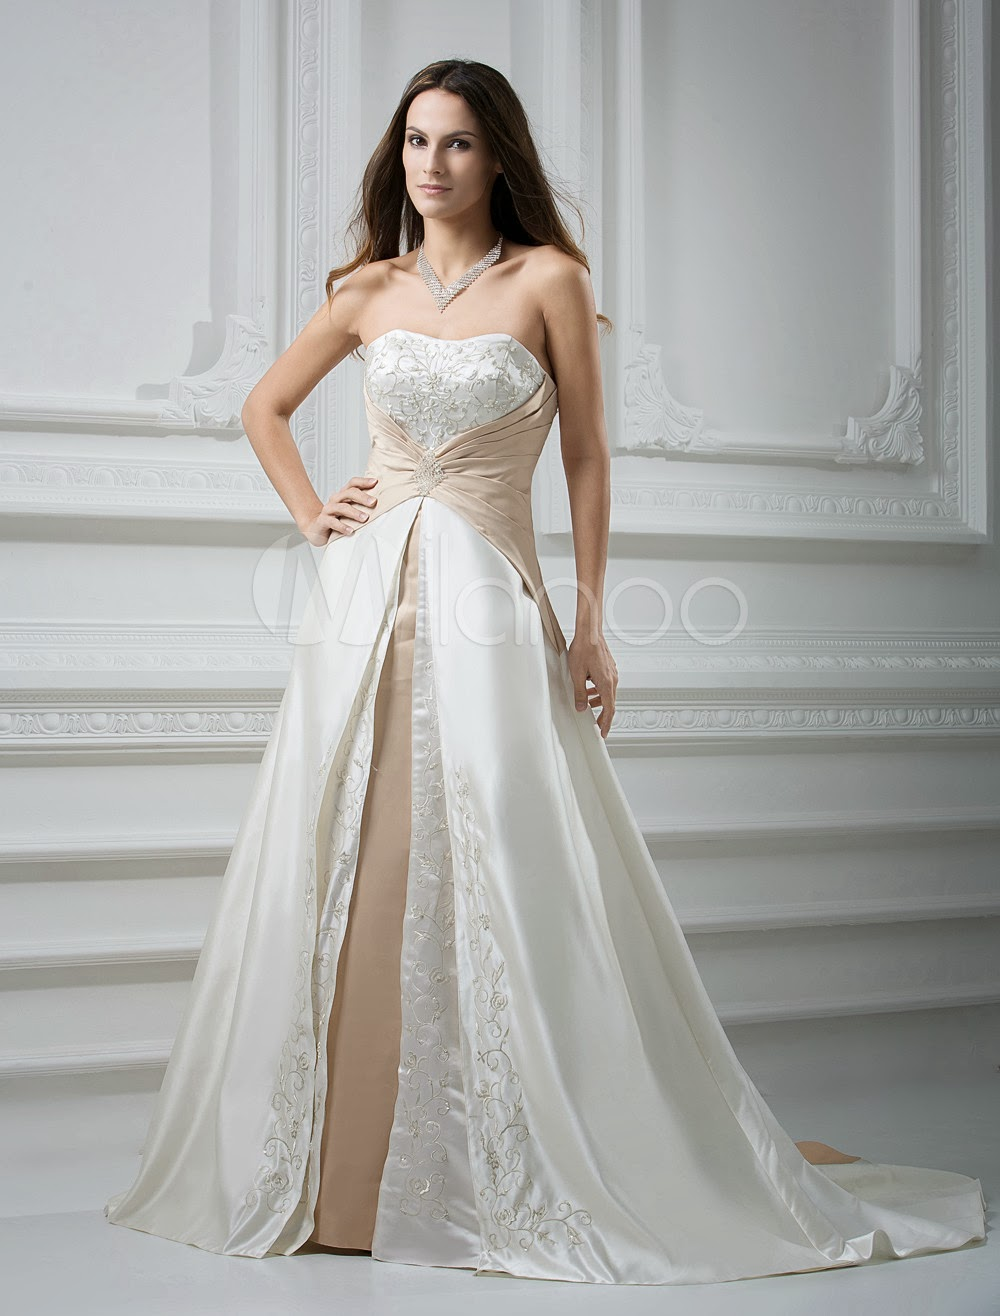 China Wholesale Dresses - White Sweeetheart Sash Satin Beaded Wedding Dress